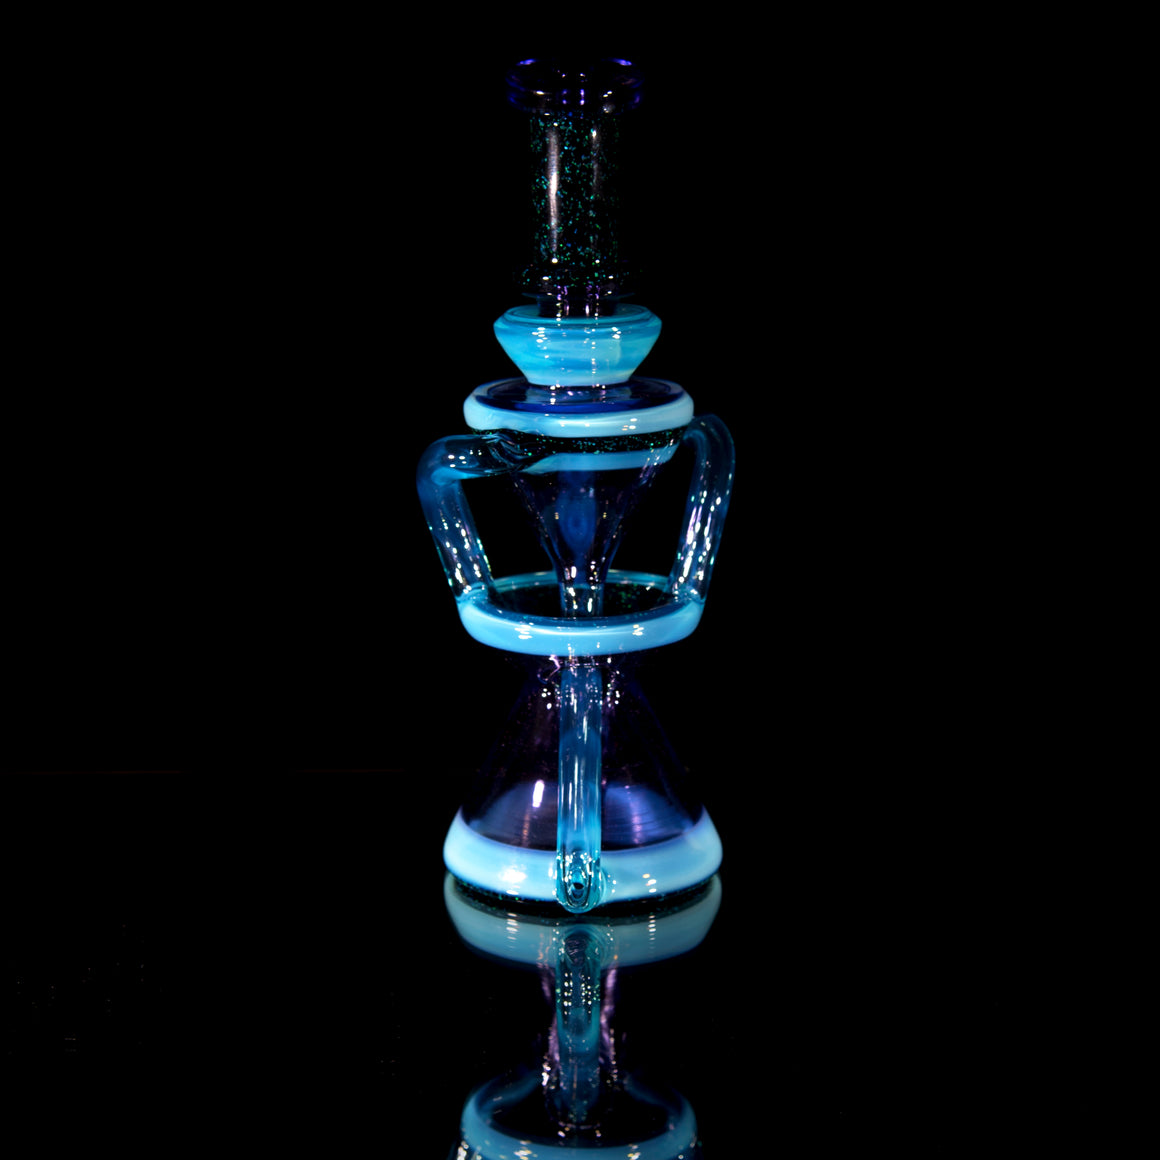 Double-uptake Floating Recycler - Meta-Terrania/Purple Rain/Crushed Opal - 10mm Female